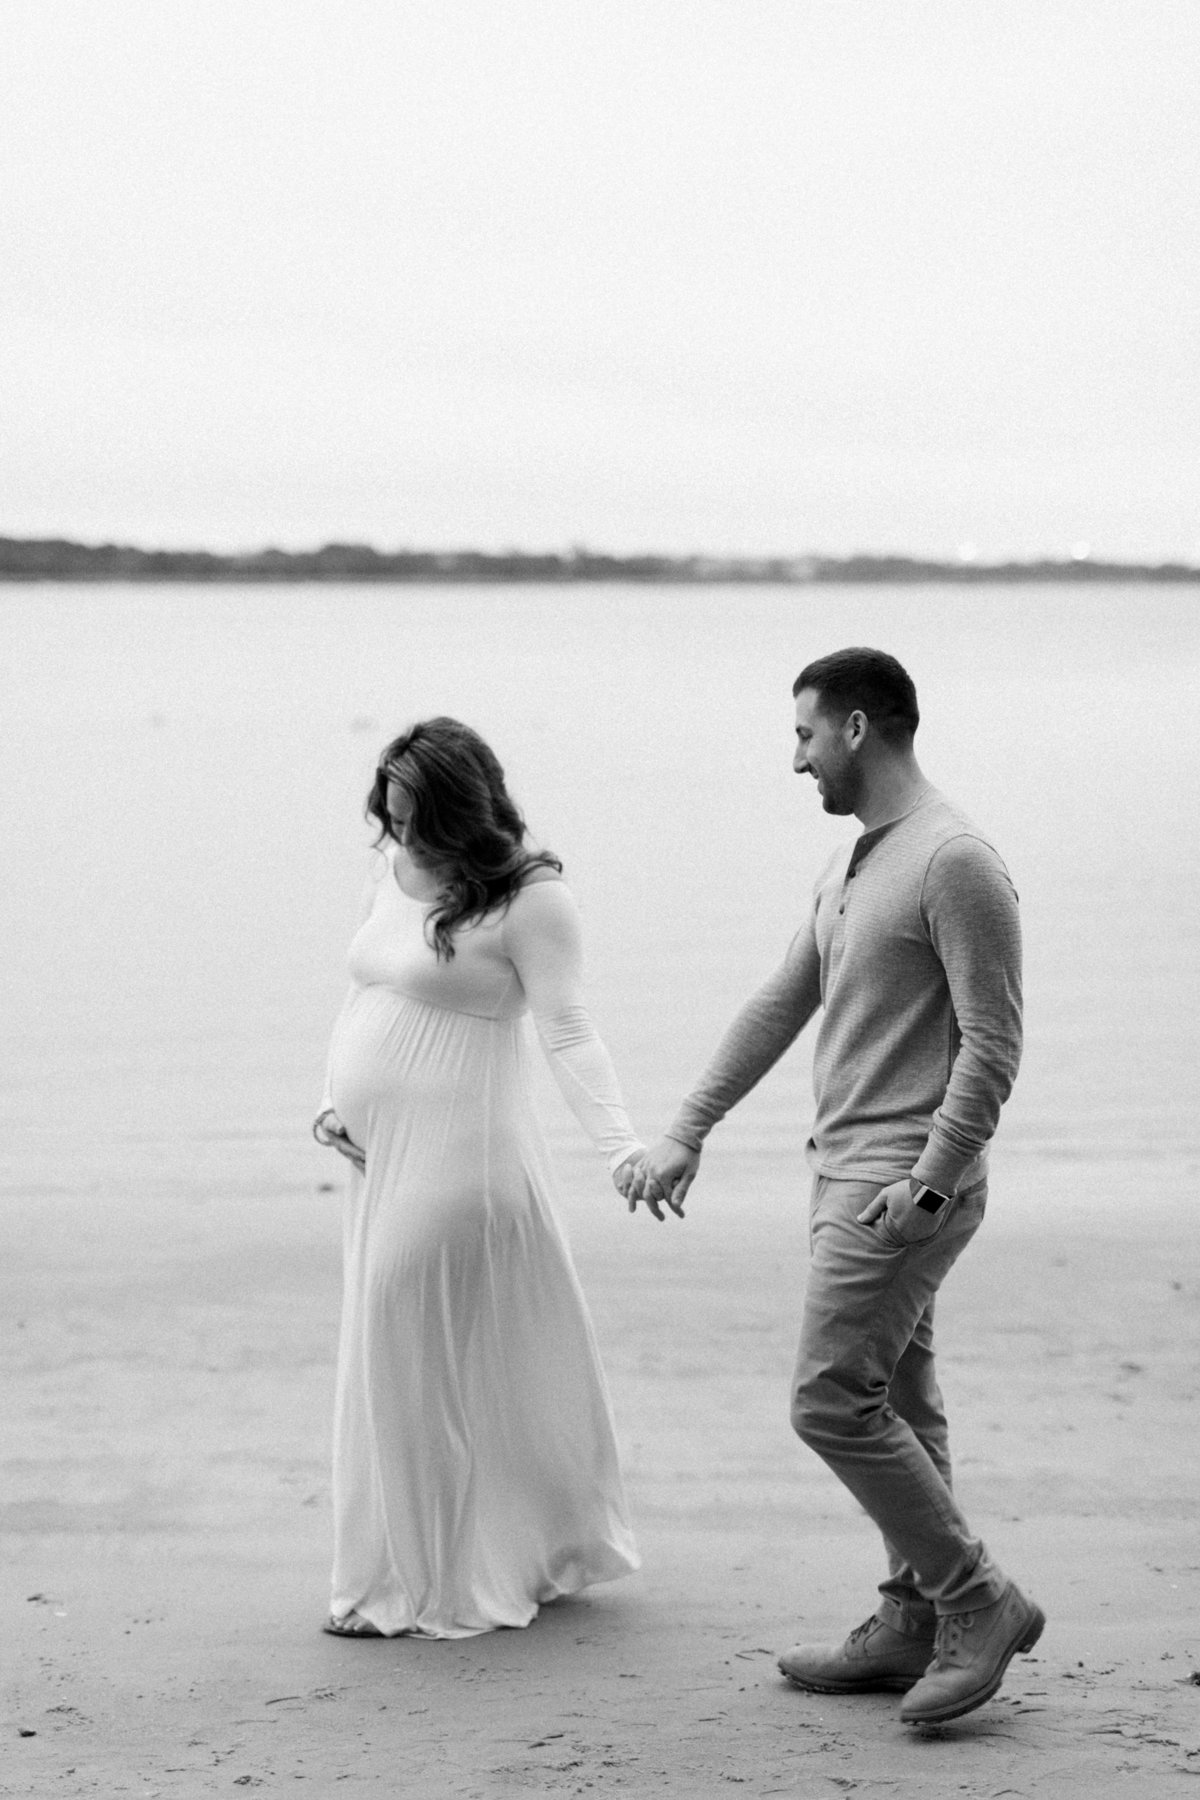 Daniel-Island-Maternity-Newborn-Photographer-33